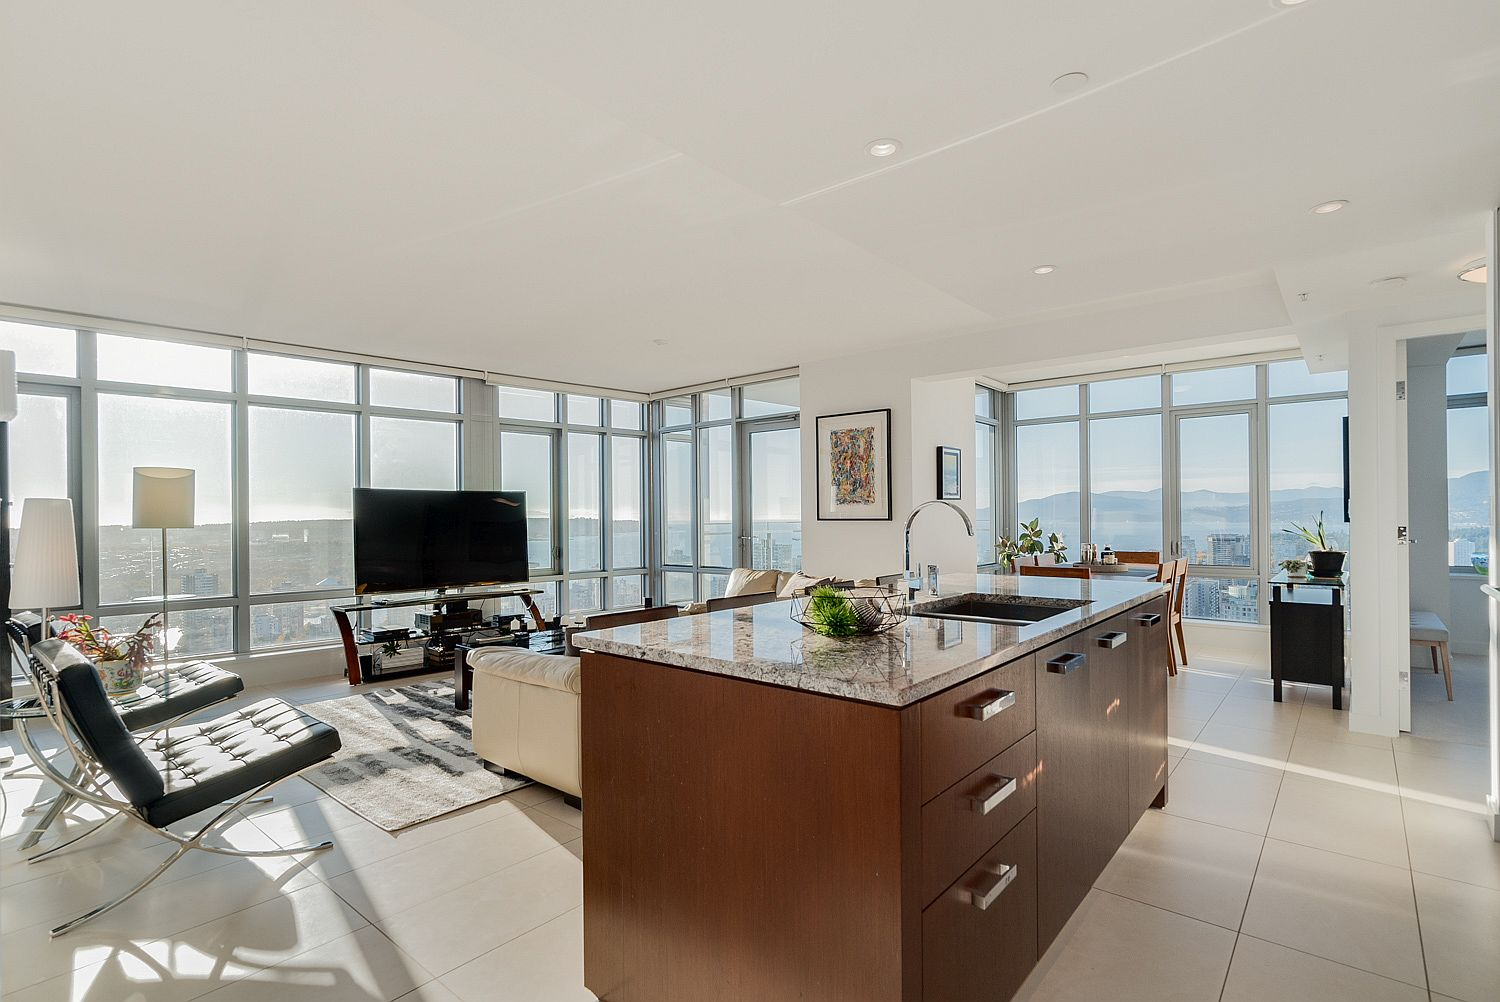 Floor-to-ceiling-glass-windows-bring-in-spectacular-views